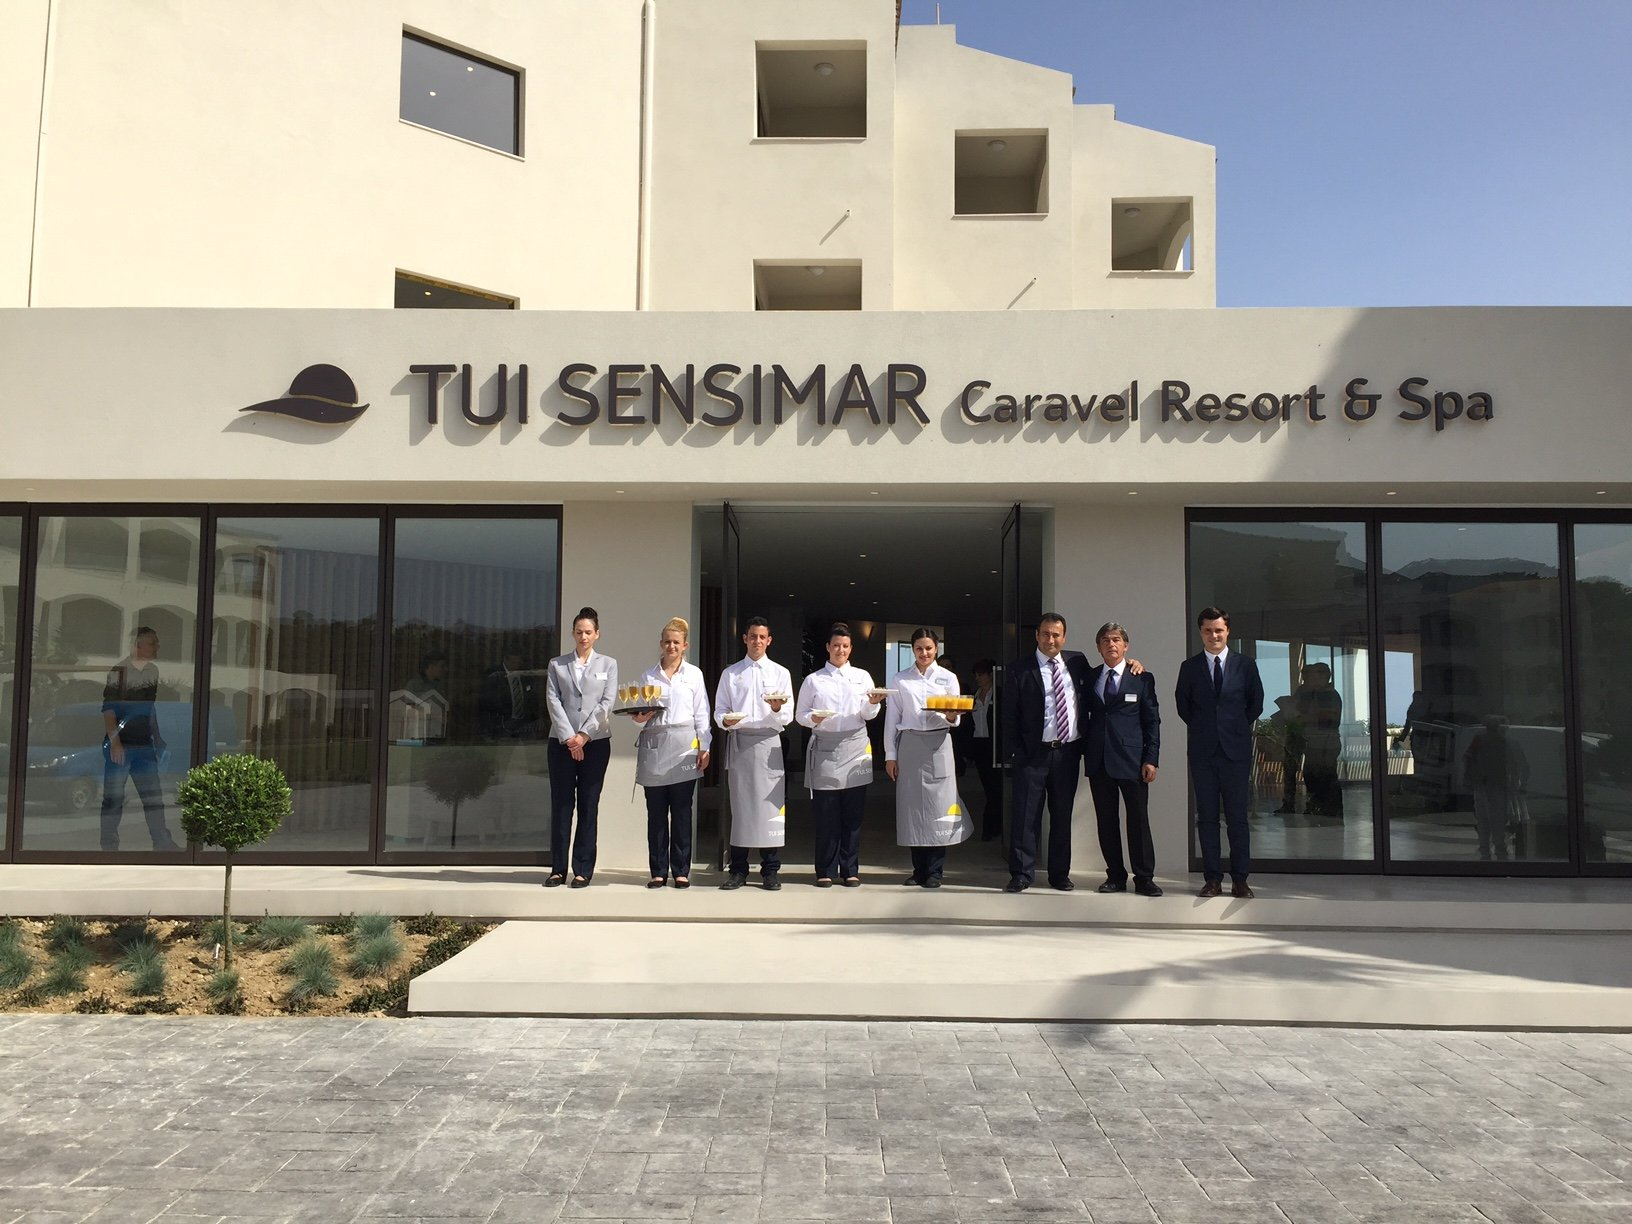 TUI SENSIMAR Caravel Resort and Spa